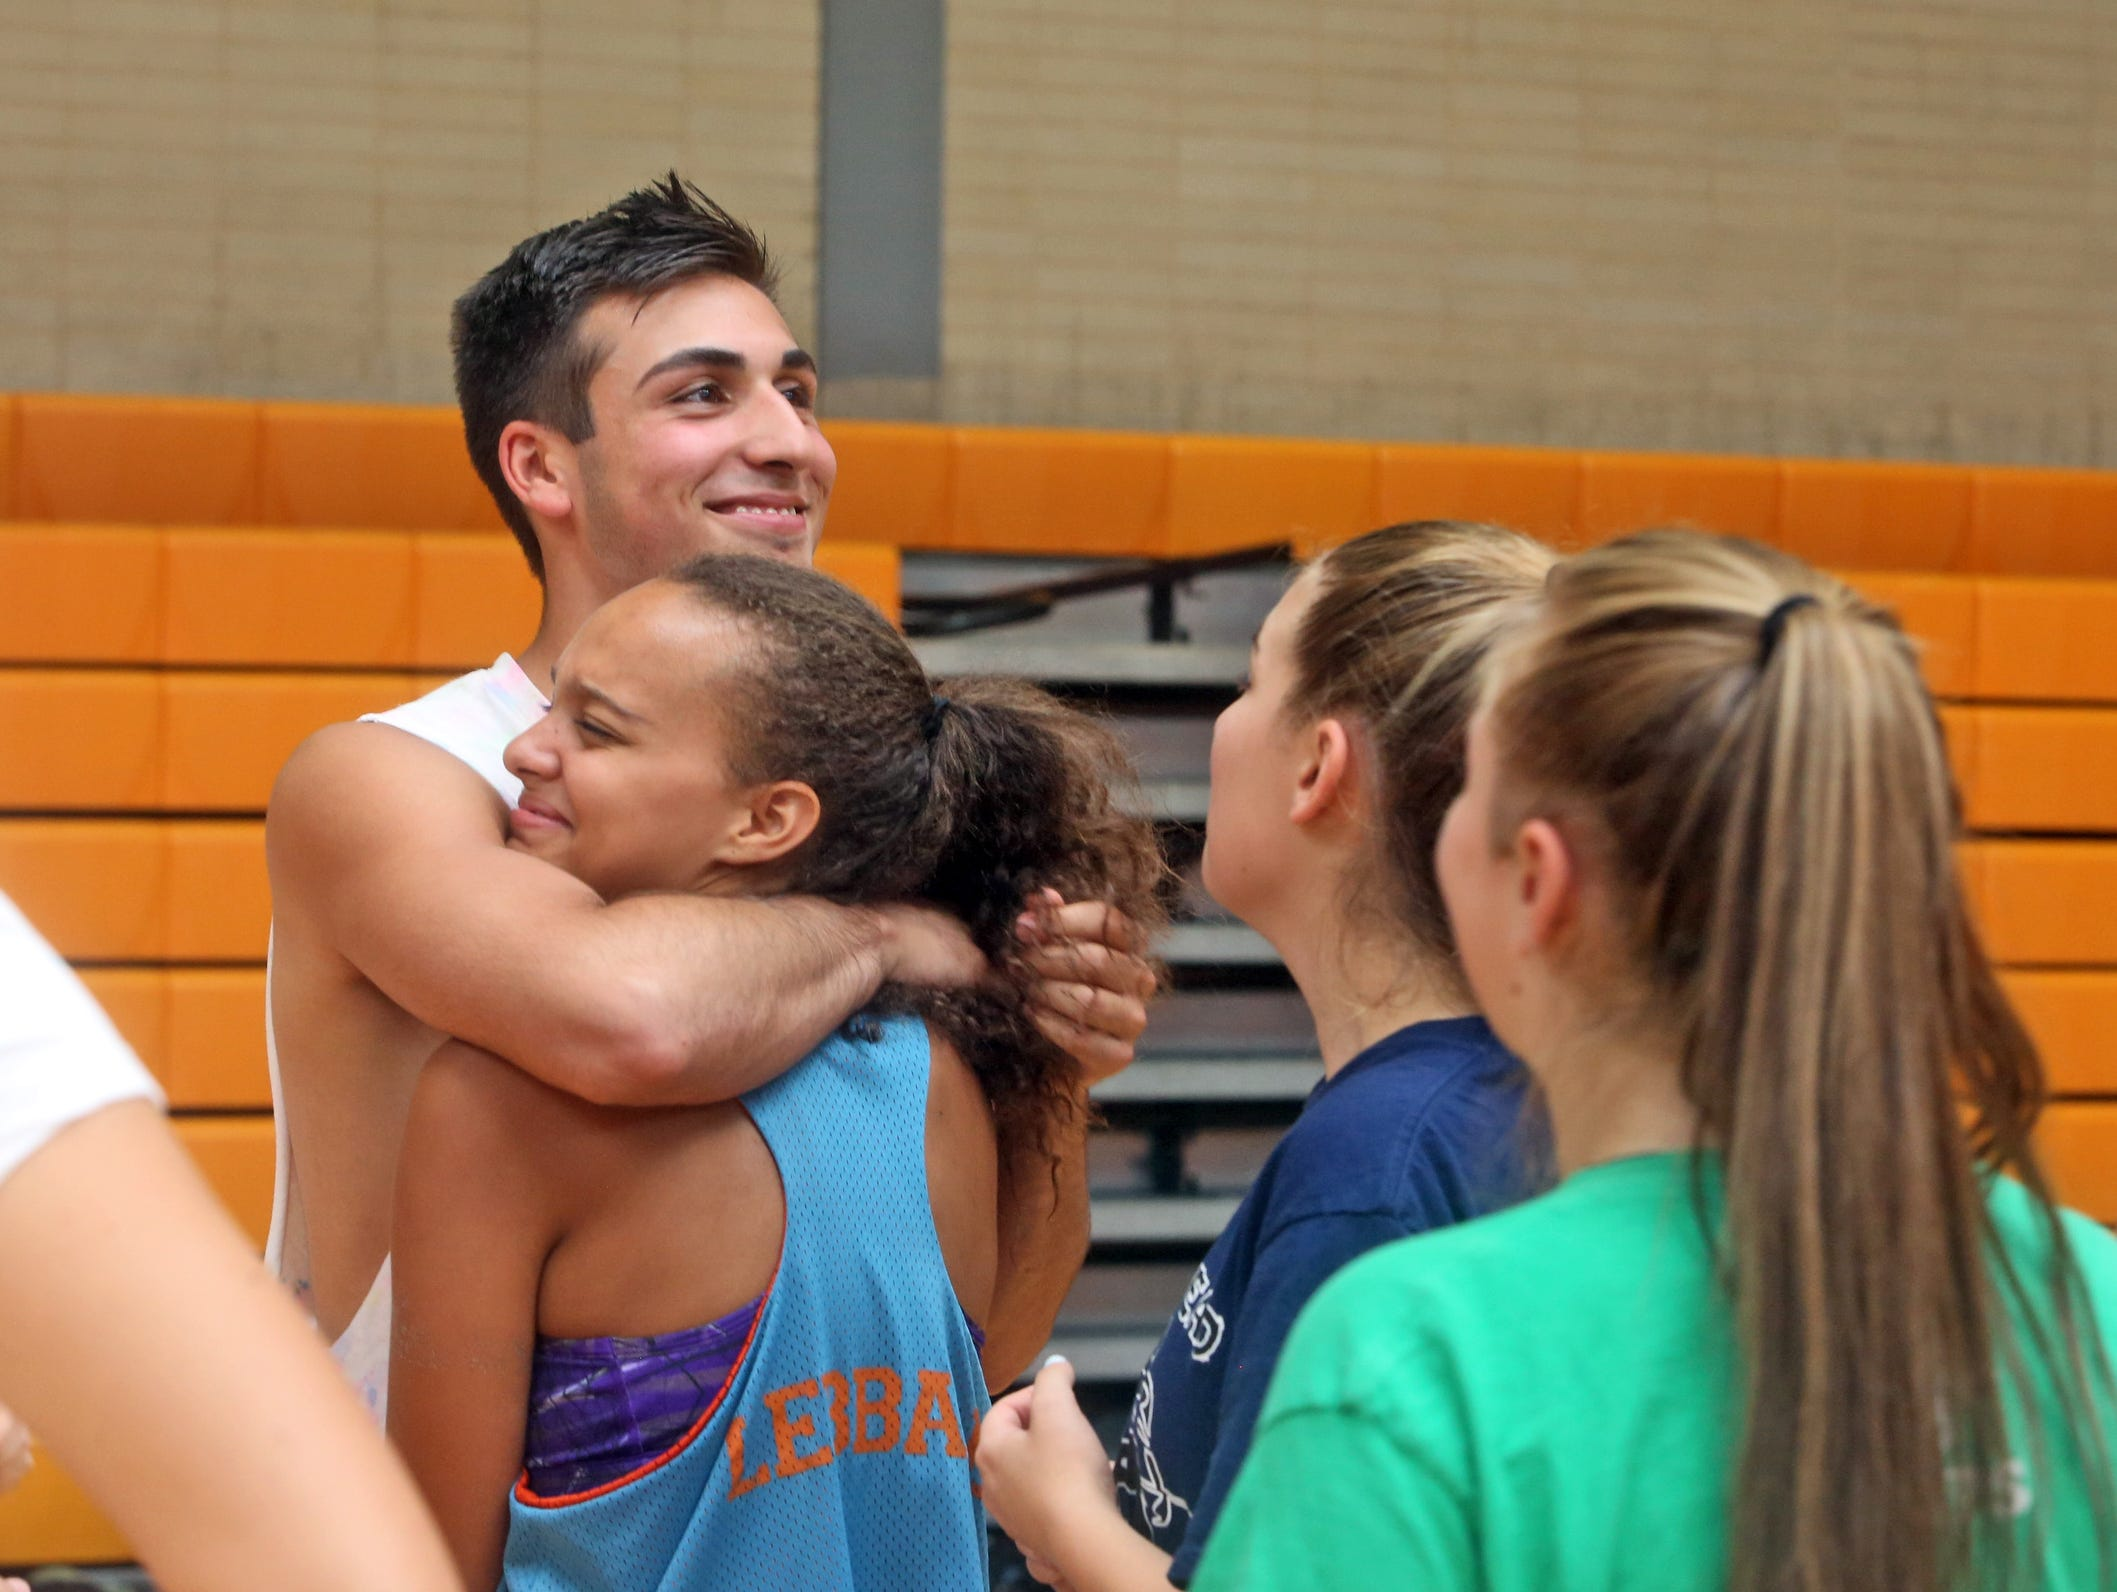 Andreo Otiniano, a senior at Mamaroneck High School, and a member of the girls volleyball team, hugs teammate Amanda Gutierreza during practice Sept. 16, 2015. Otiniano played with the team as a sophomore, and still practices with the team and is on the roster, but present Section 1 rules do not allow him to play in matches.